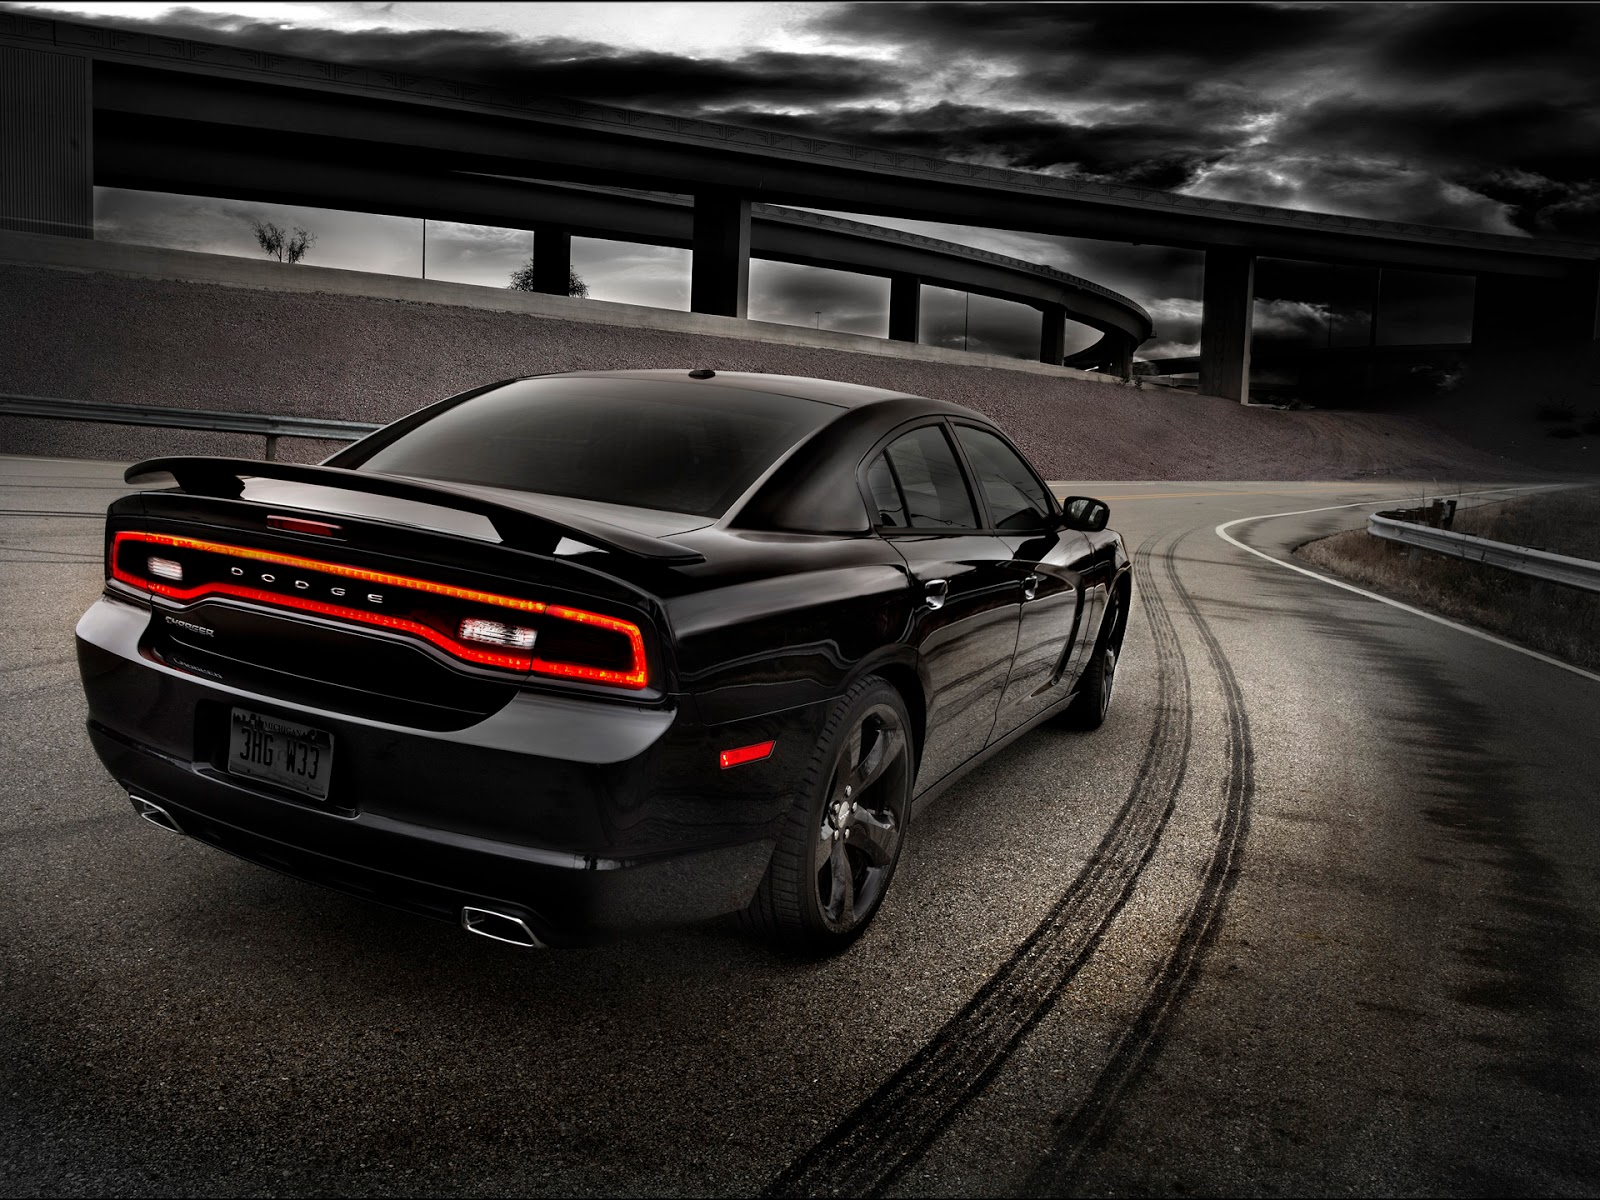 HD Wallpapers: 2012 Dodge Charger RT Wallpapers